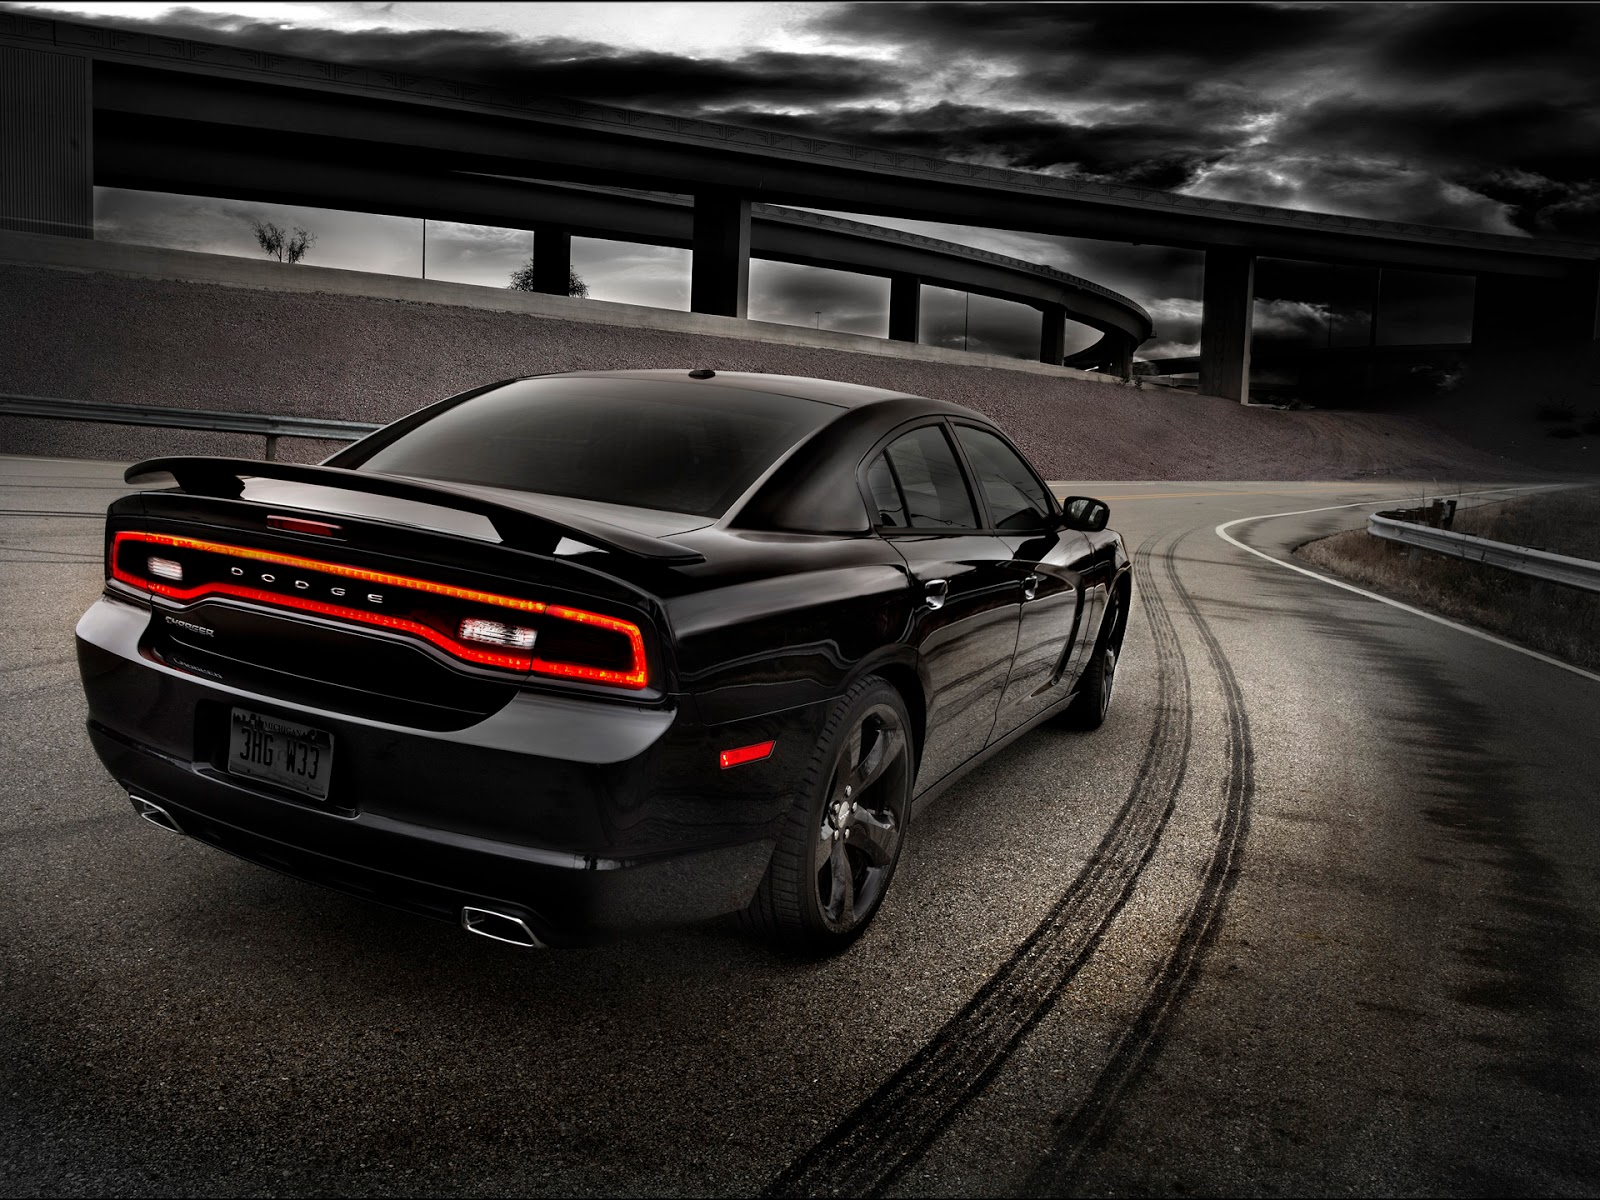 HD Wallpapers: 2012 Dodge Charger RT Wallpapers